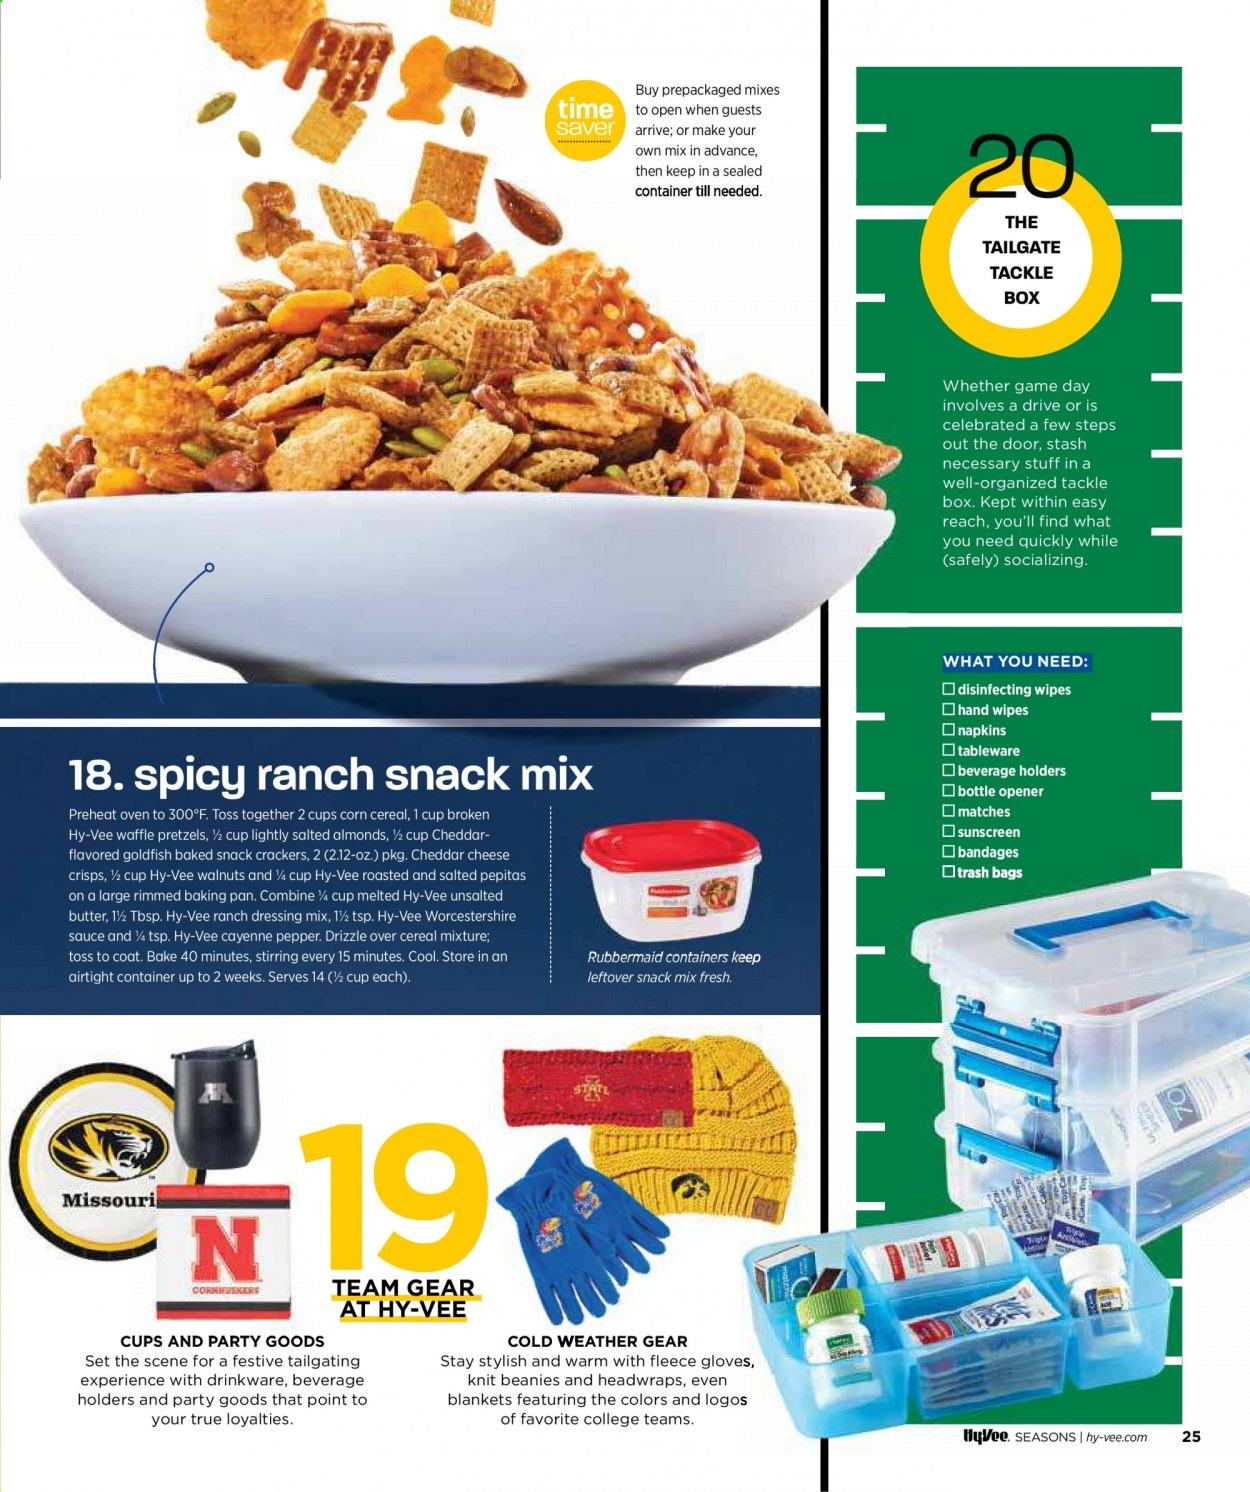 Hy-Vee Flyer - 09.01.2020 - 09.30.2020 - Sales products - almonds, bag, beanie, blanket, bowl, box, butter, cereals, coat, container, cookies, corn, crackers, cup, door, drinkware, gloves, ranch dressing, shirt, spatula, tableware, thermometer, tong, trash bag, tray, walnuts, wipes, worcestershire sauce, holder, plate, pretzels, cheddar, pan, oven, paper plate, cheese, game, dressing, pepper, snack, cereal, sauce, gear, napkins, cool, barbecue, bottle opener, trash bags, tools, doors. Page 27.